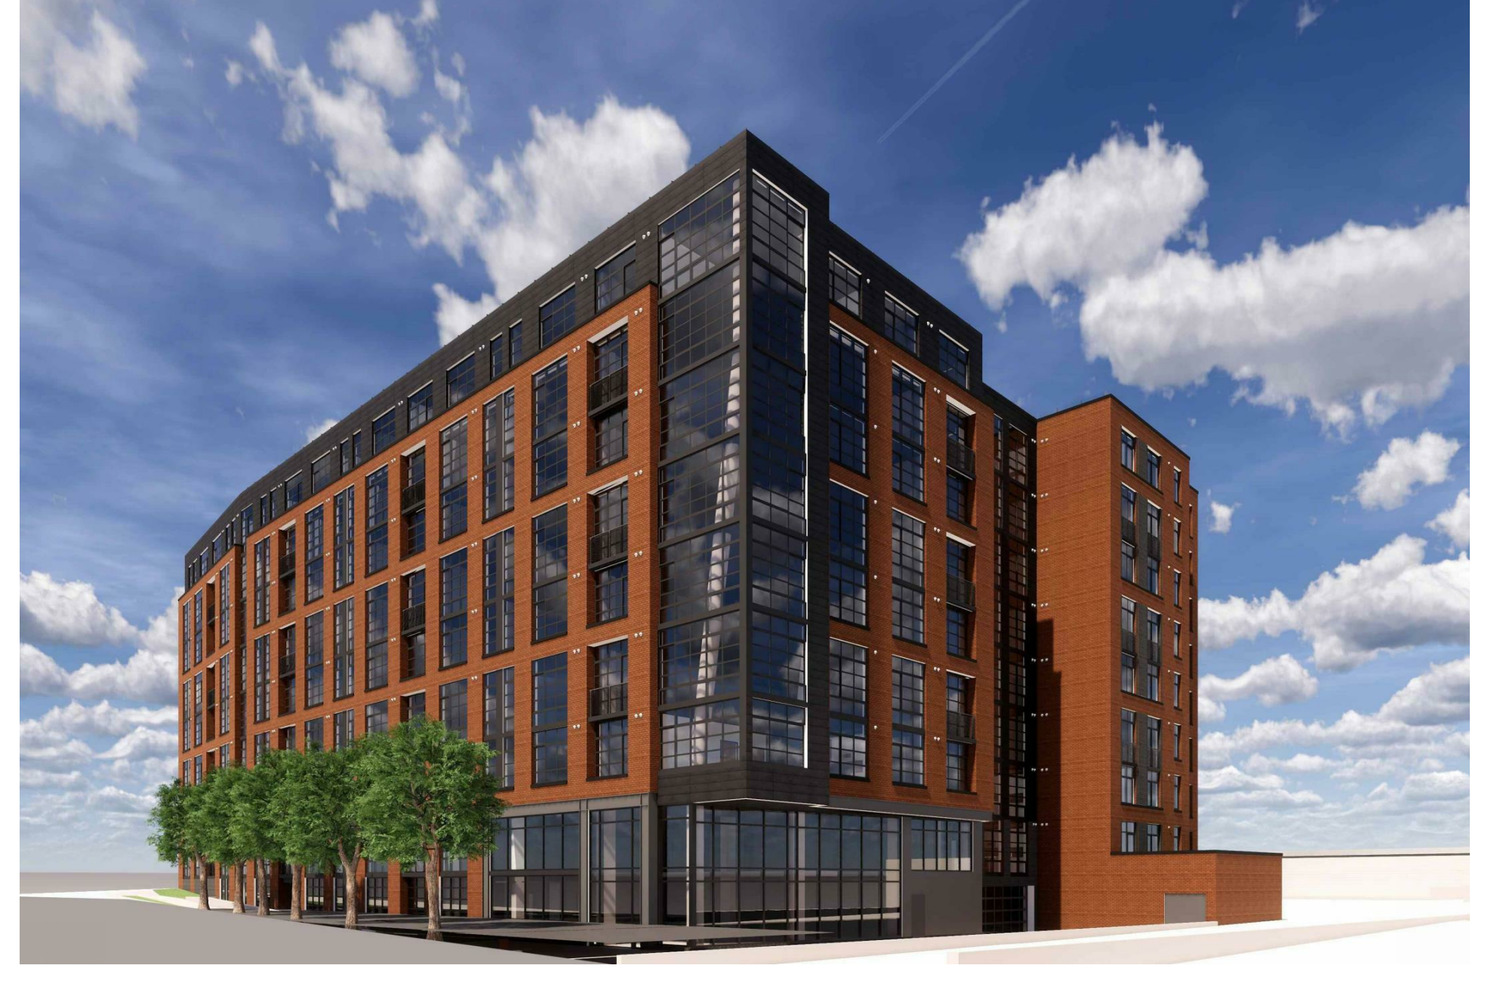 CBG builds 2607 Reed Street, a 353-Unit LEED-Certified® Luxury High-Rise with Below-Grade Parking in Washington, DC - Image #1